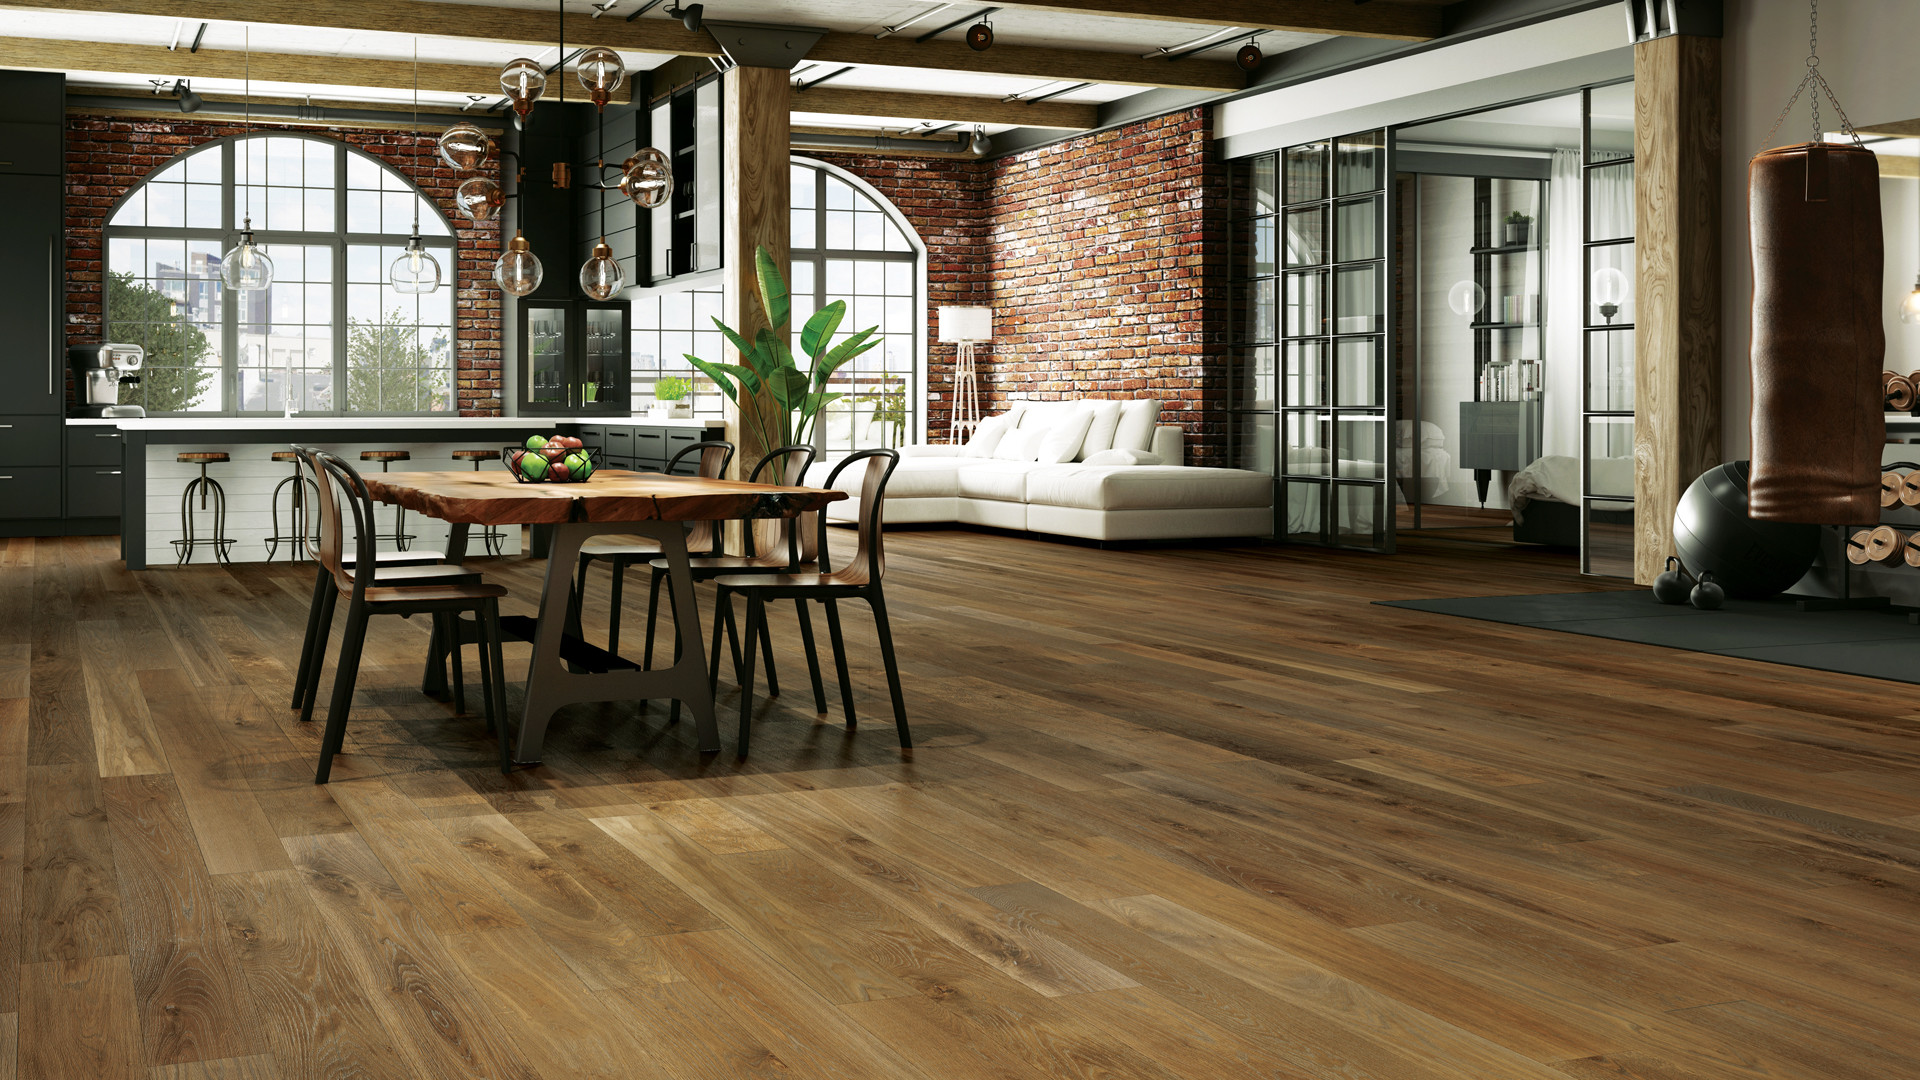 different width hardwood flooring of 4 latest hardwood flooring trends of 2018 lauzon flooring for combined with a wire brushed texture and an ultra matte sheen these new 7a½ wide white oak hardwood floors will definitely add character to your home